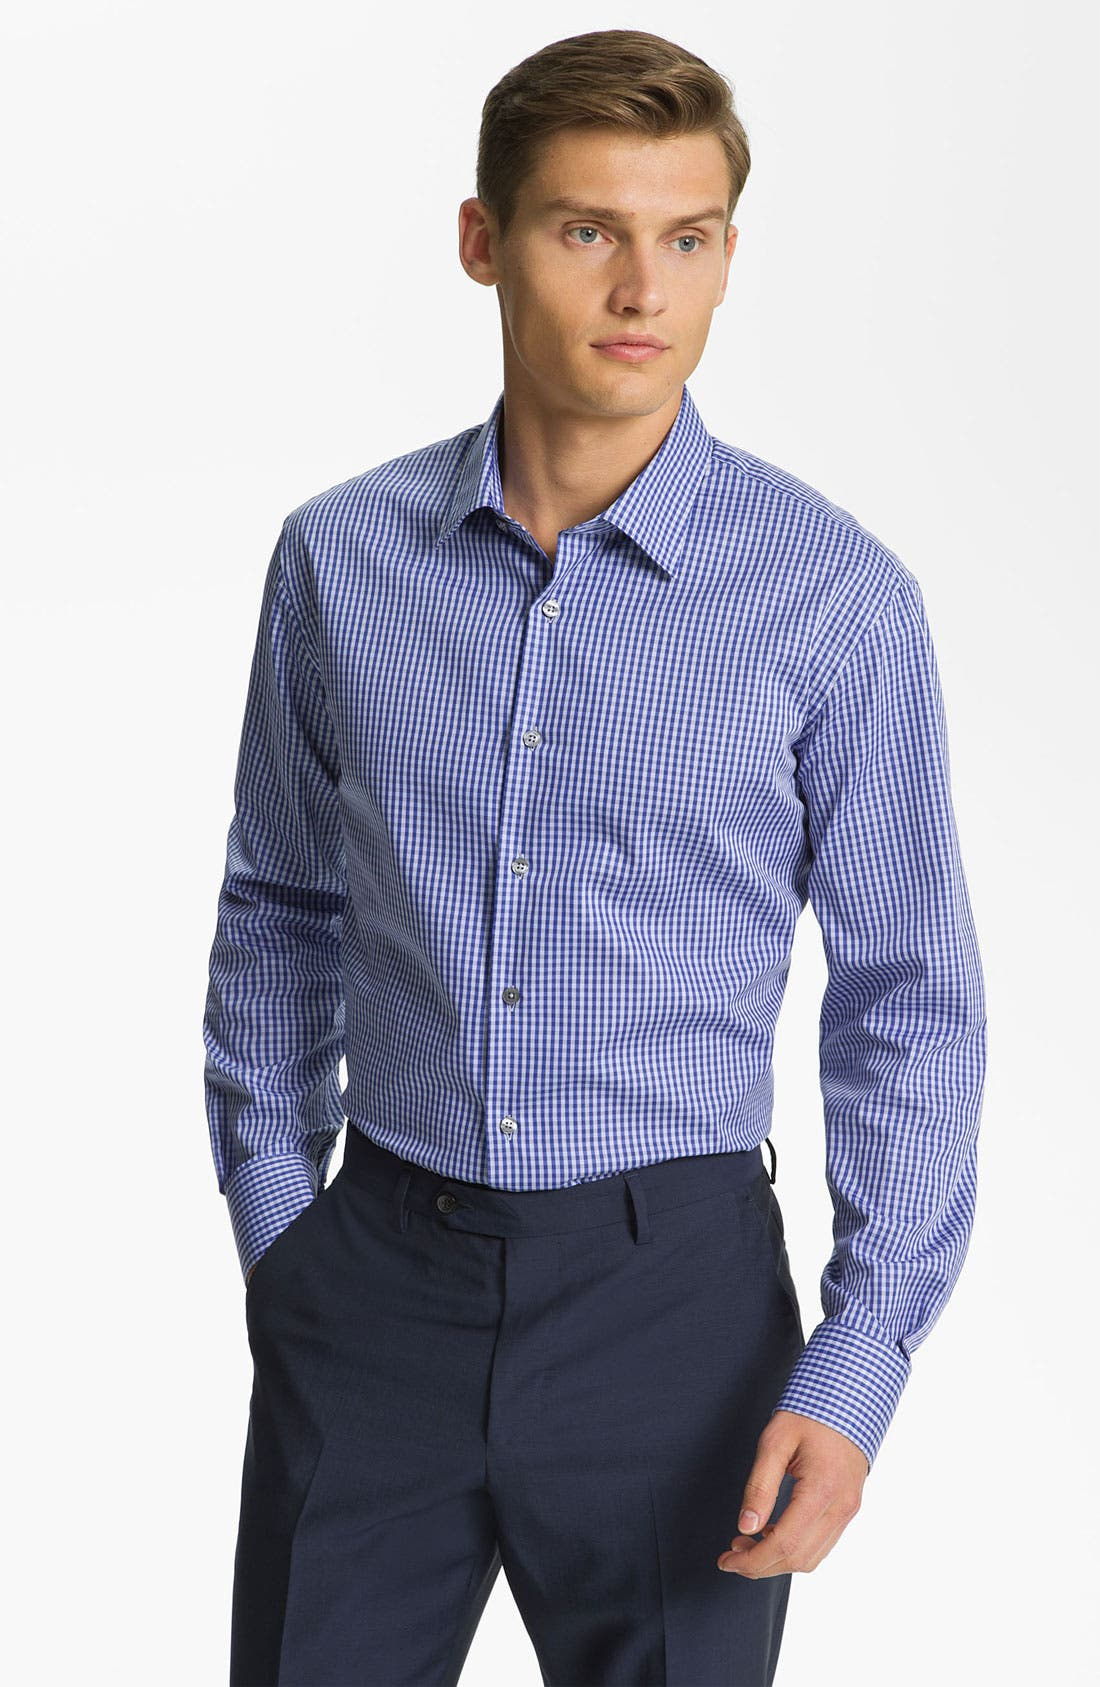 Alternate Image 1 Selected - Paul Smith London Gingham Check Dress Shirt